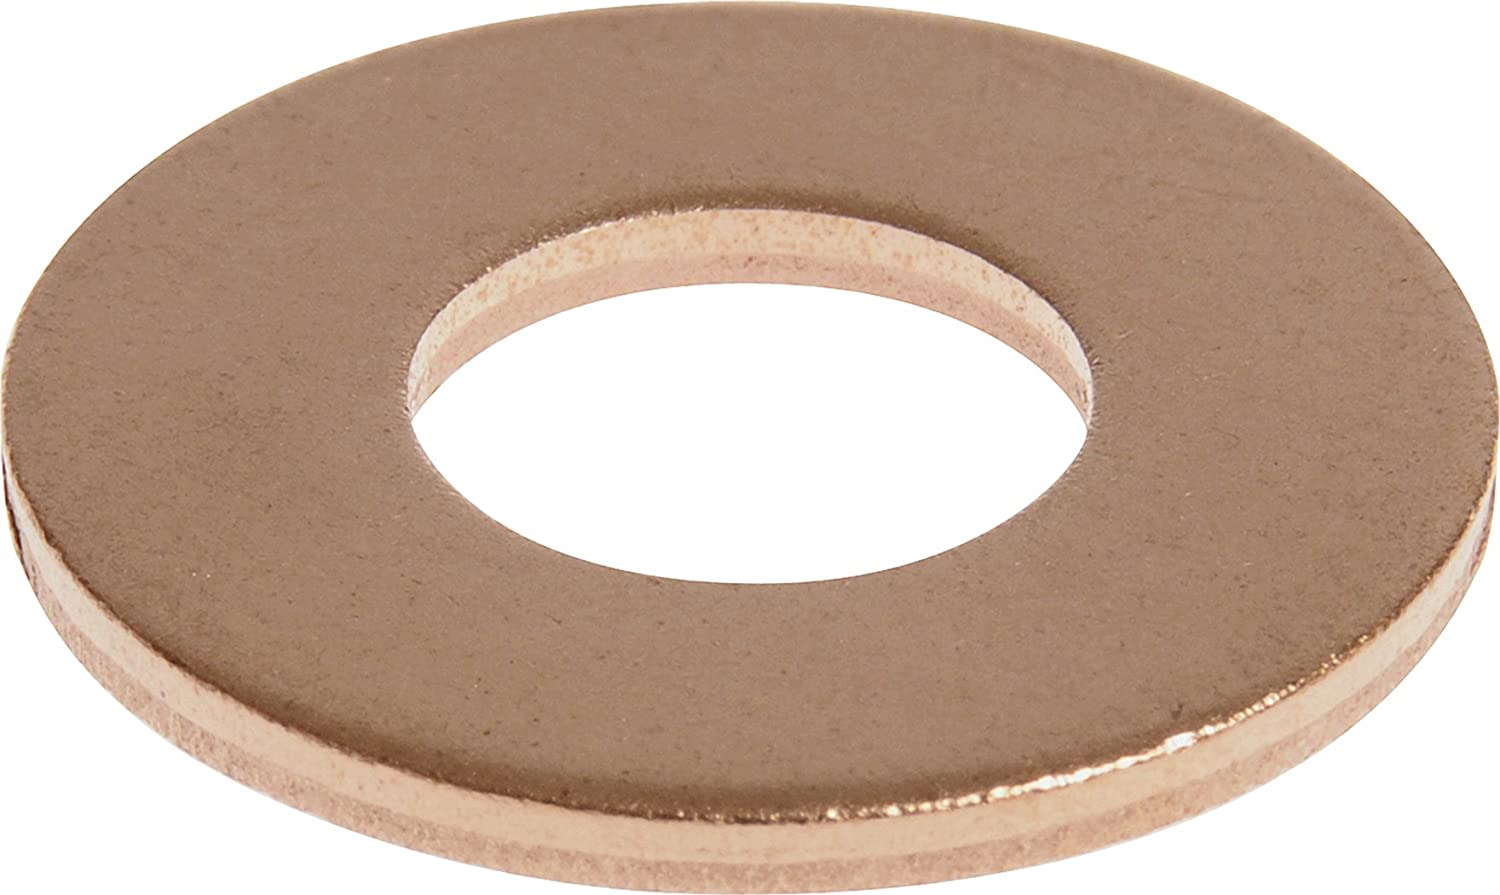 The Hillman Group 44138 #4 Copper Flat Washer 100-Pack